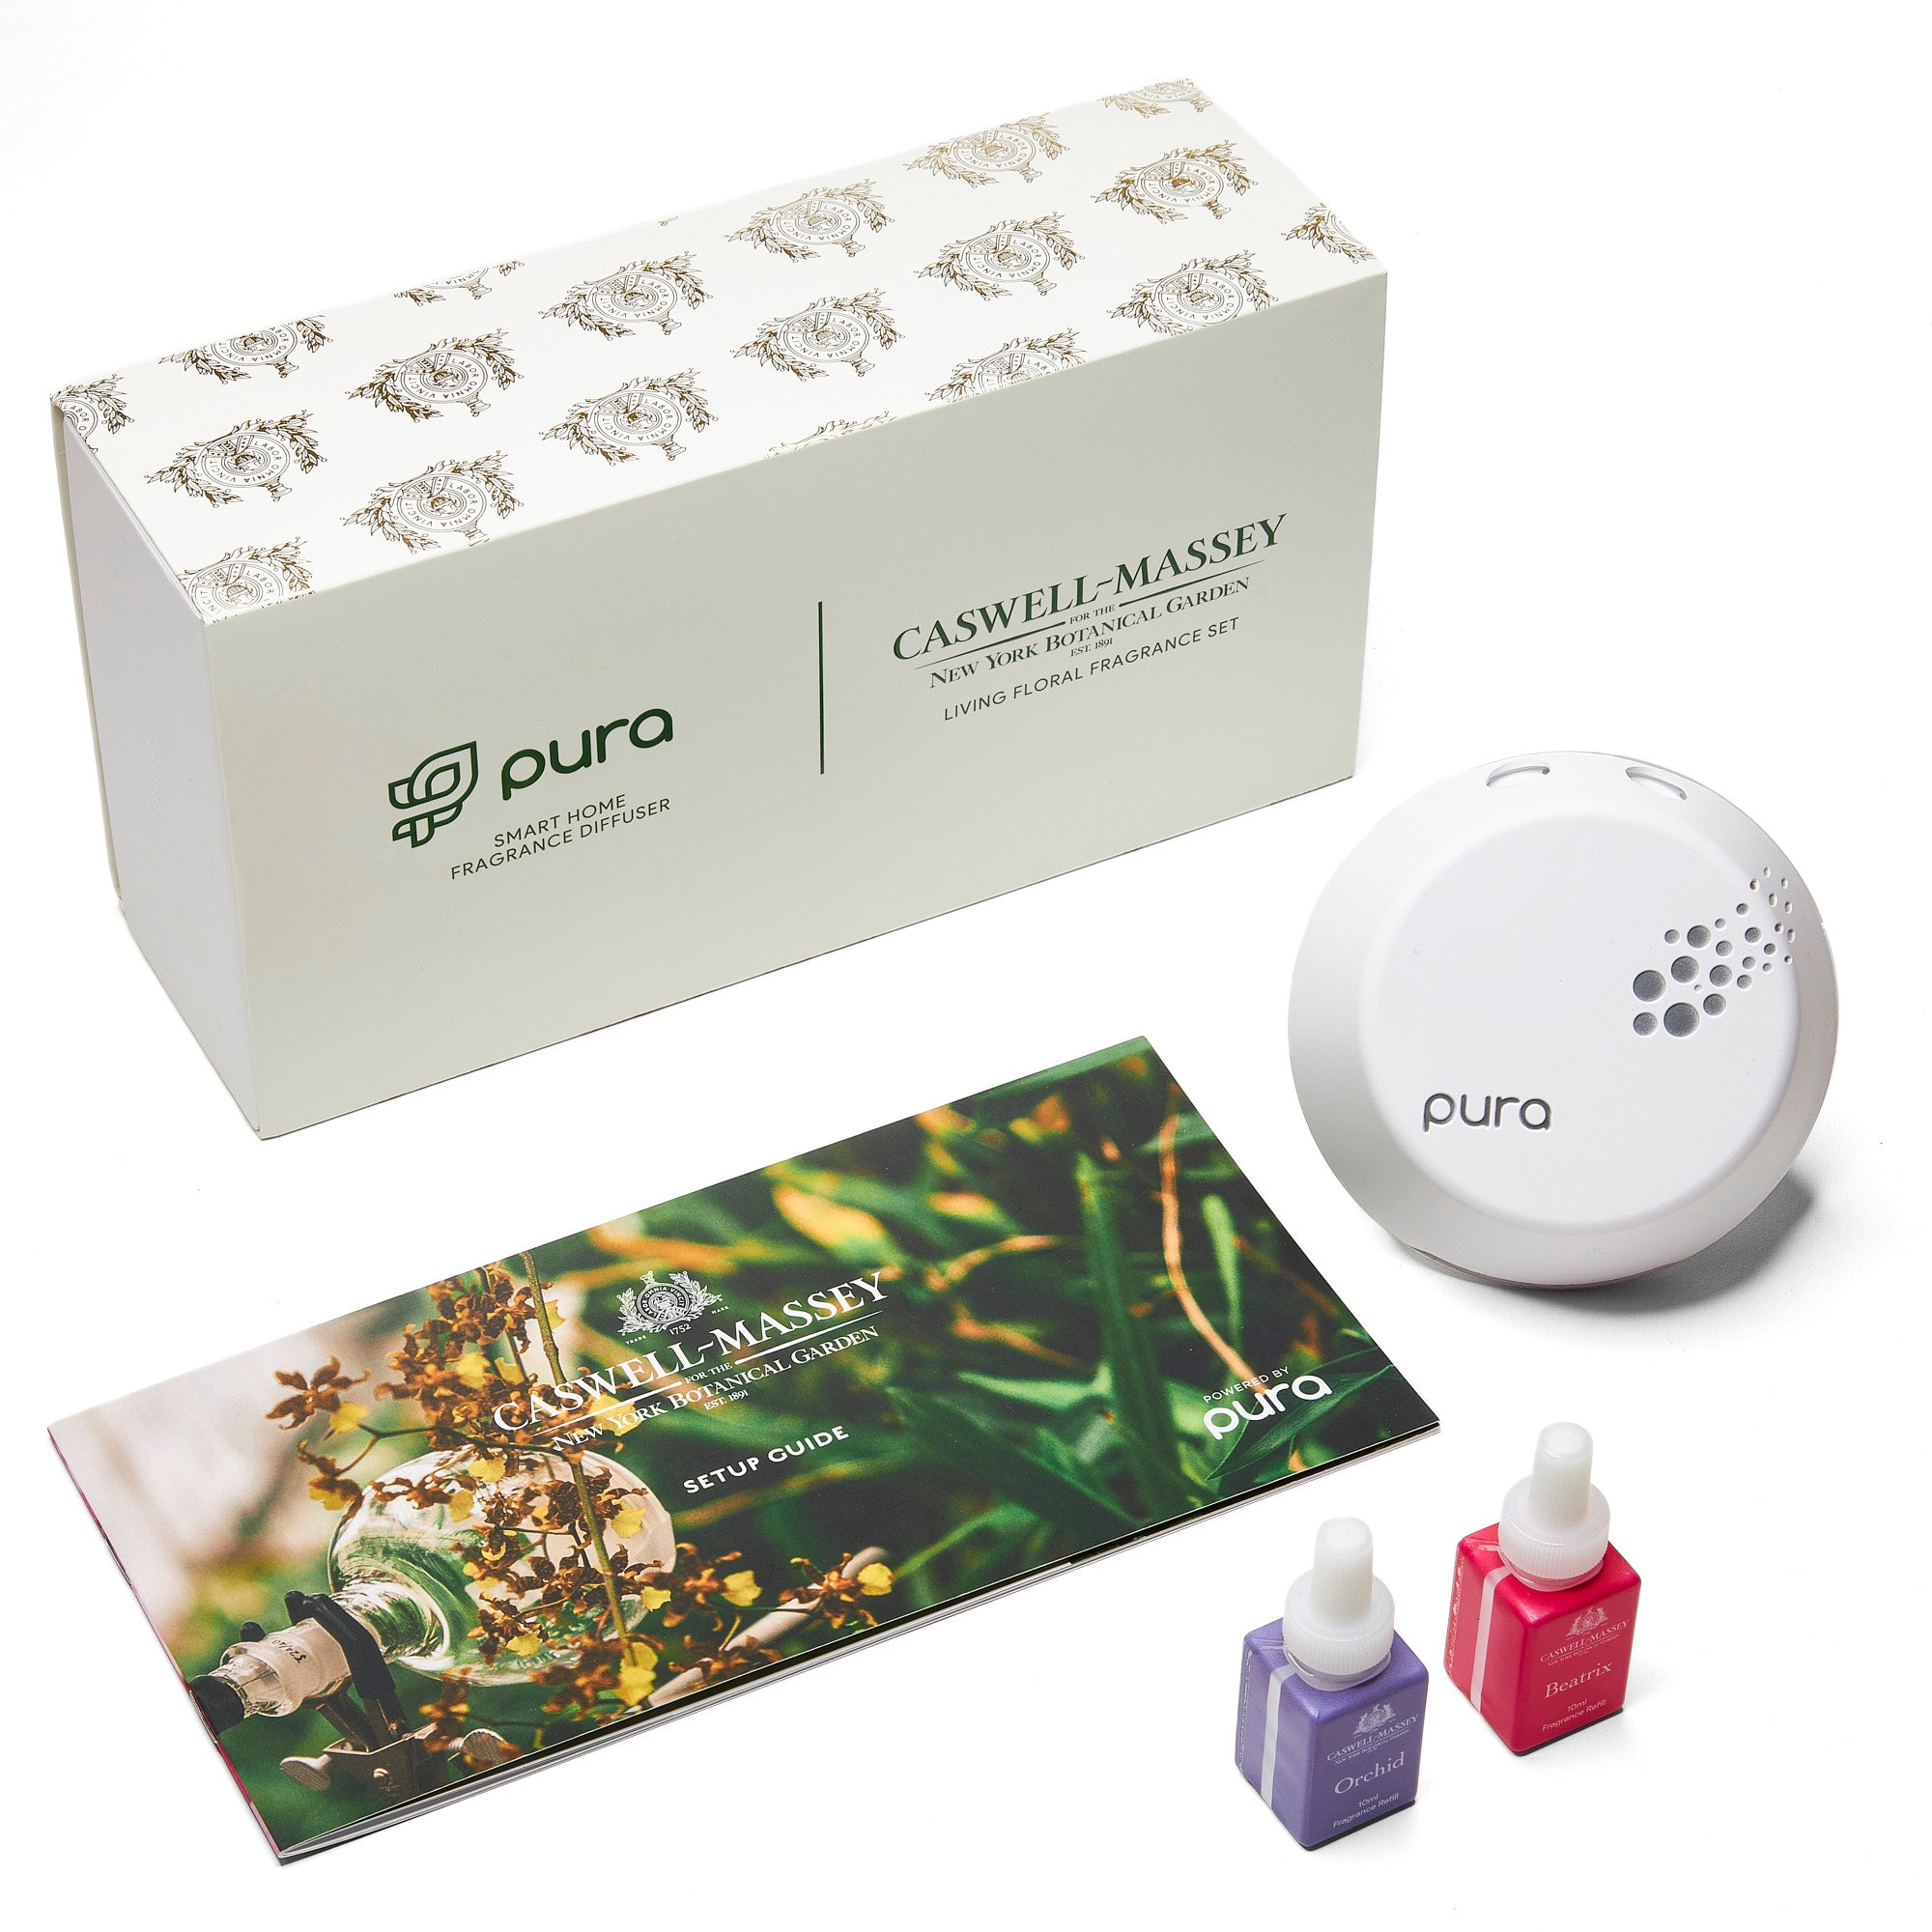 PURA Smart Diffuser Set featuring NYBG Fragrances Beatrix Rose & Orchid